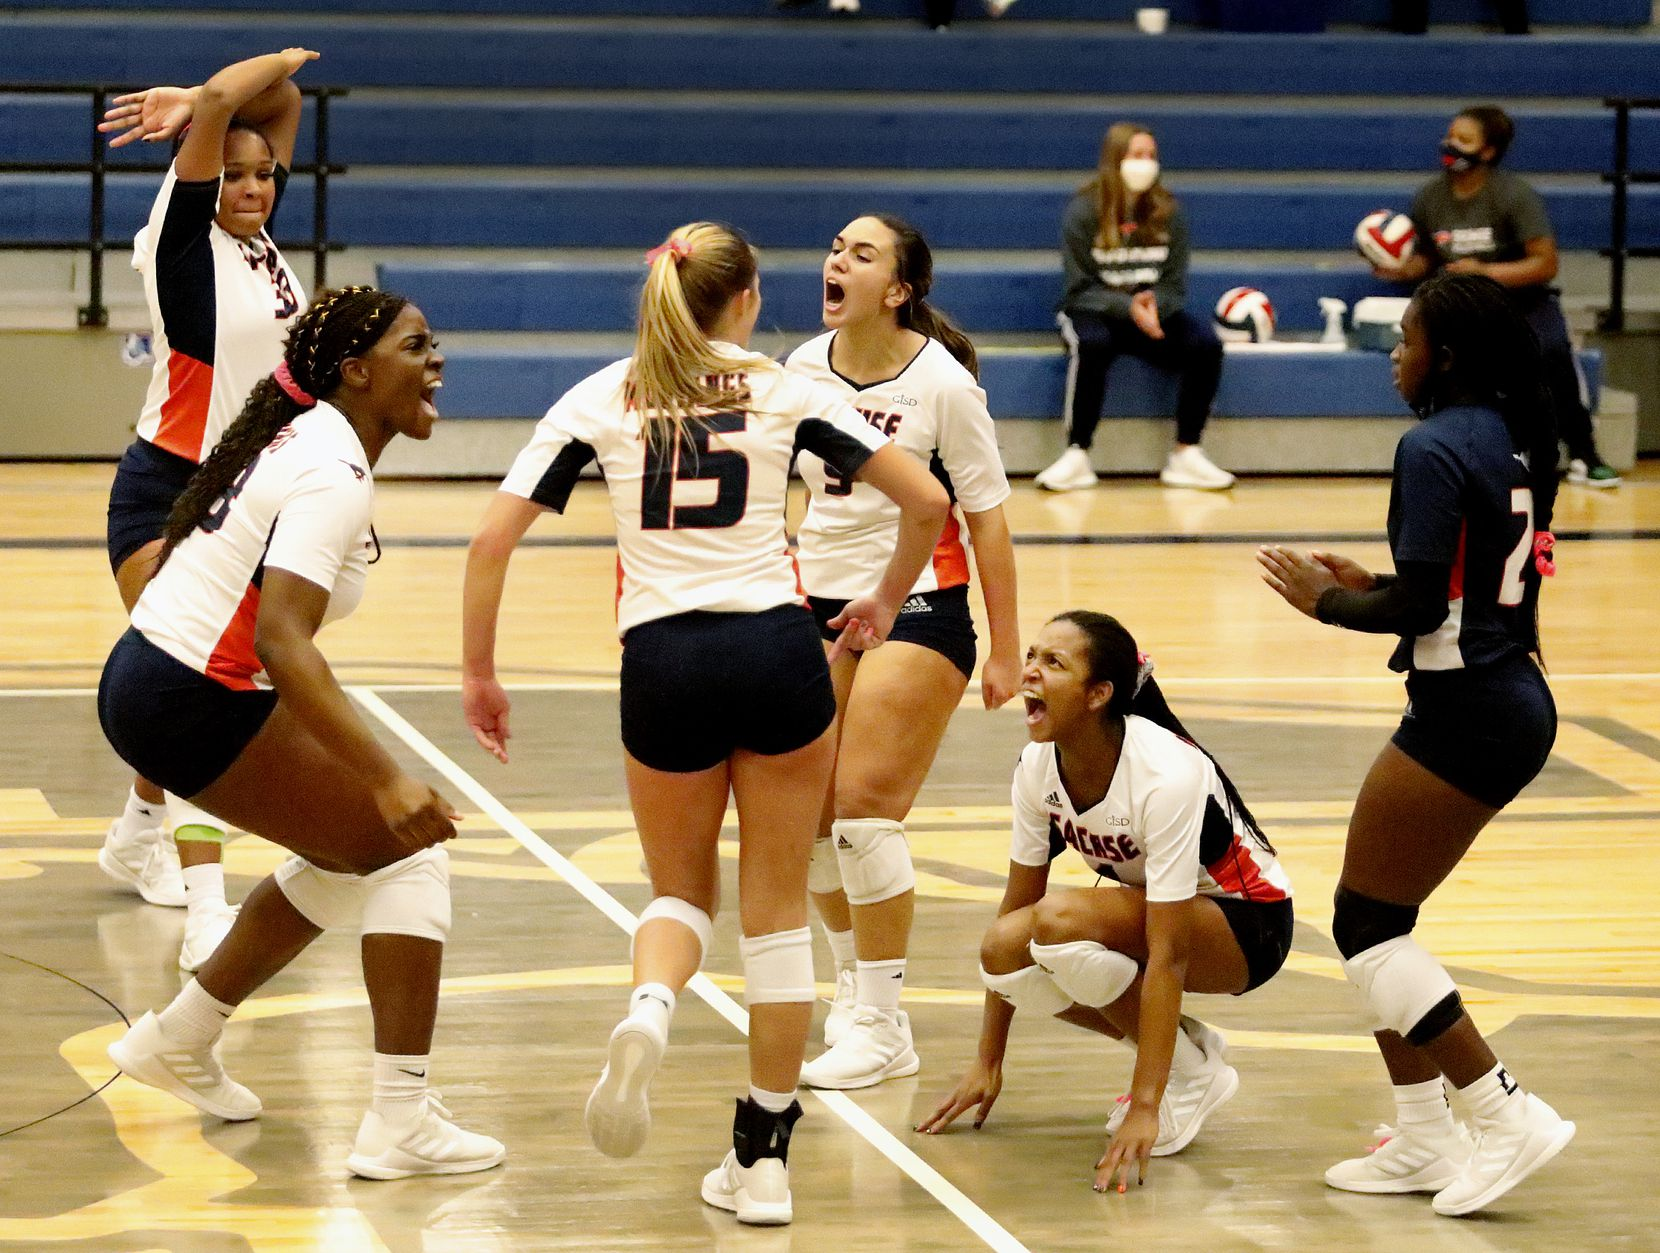 Sachse High School celebrates scoring a crucial point during game three as Sachse High School hosted Wylie High School in a District 9-6A volleyball match on Tuesday, October 27, 2020.